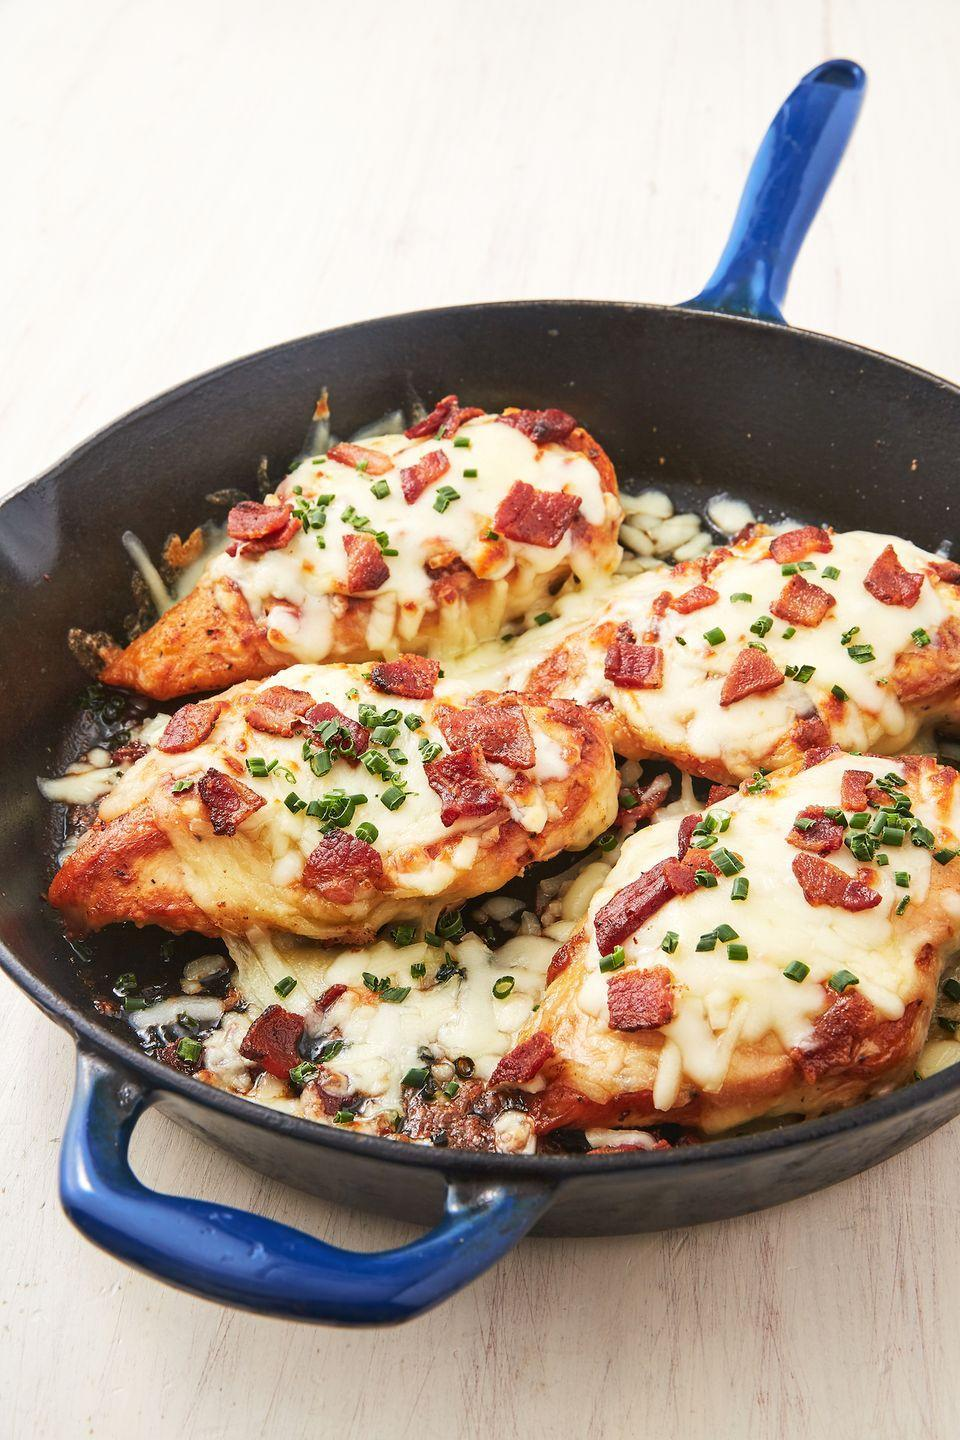 """<p>Keto fans, this one's for you.</p><p>Get the recipe from <a href=""""https://www.delish.com/cooking/recipe-ideas/a27156187/cheesy-bacon-ranch-chicken-reipe/"""" rel=""""nofollow noopener"""" target=""""_blank"""" data-ylk=""""slk:Delish"""" class=""""link rapid-noclick-resp"""">Delish</a>. </p>"""